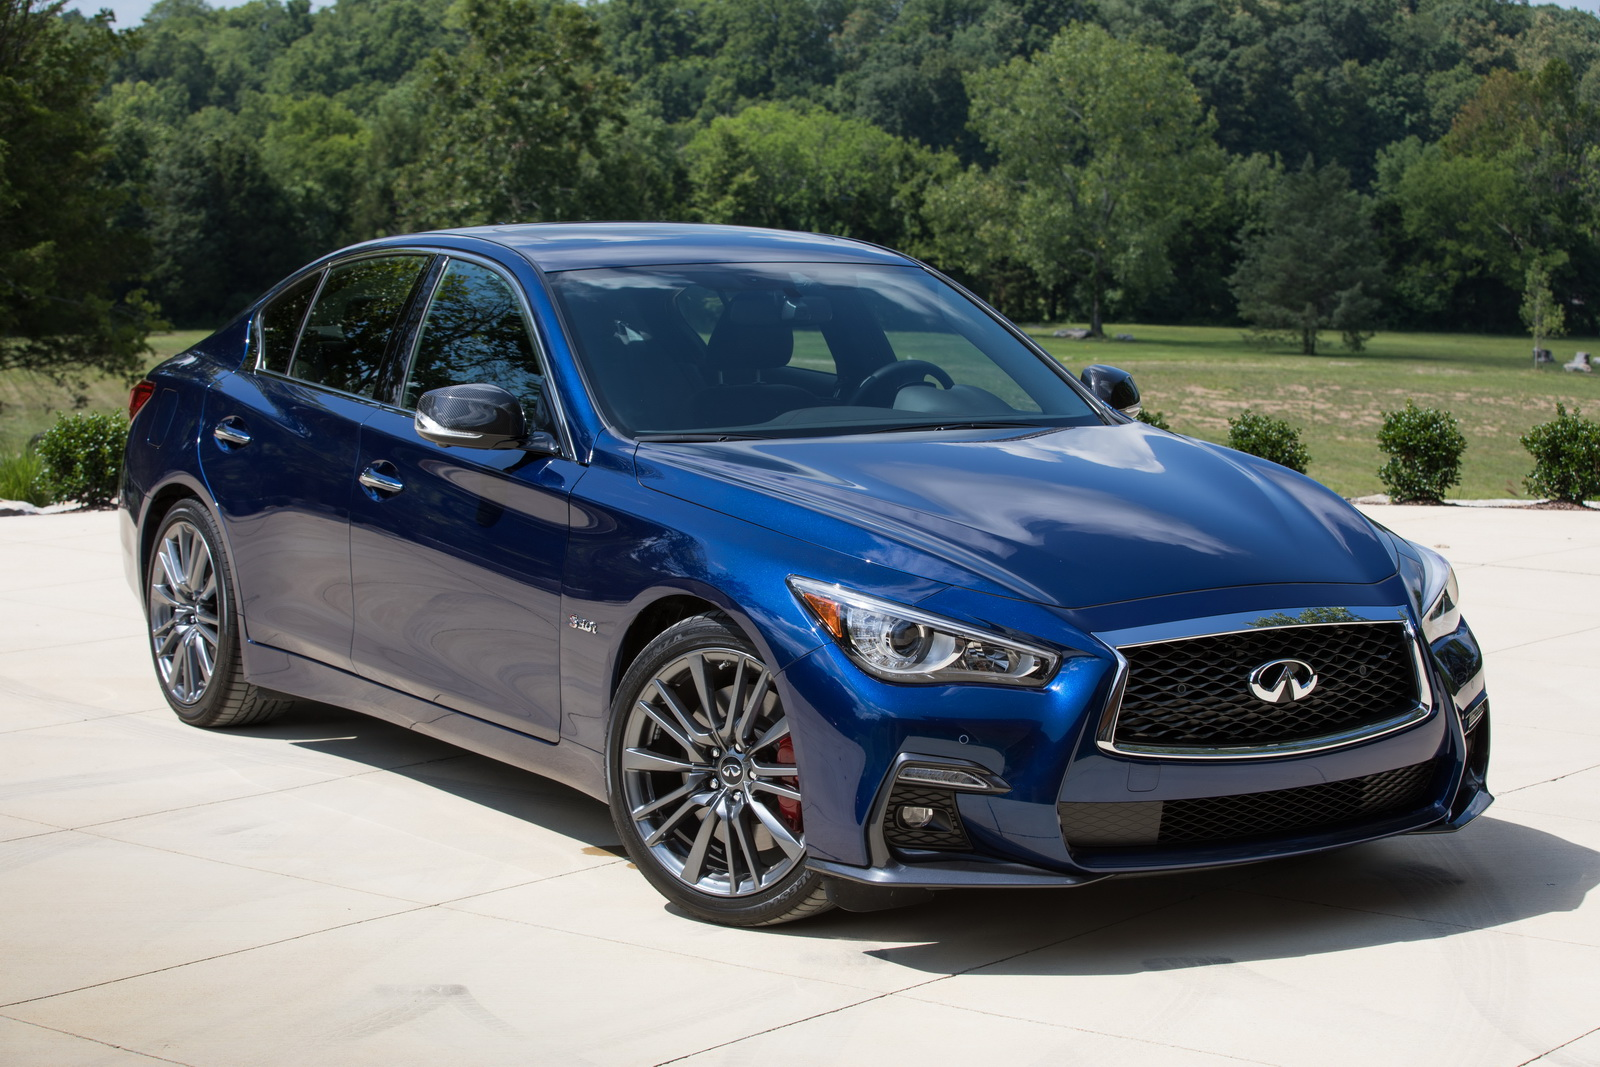 refreshed 2018 infiniti q50 priced from 34 200 48 pics. Black Bedroom Furniture Sets. Home Design Ideas